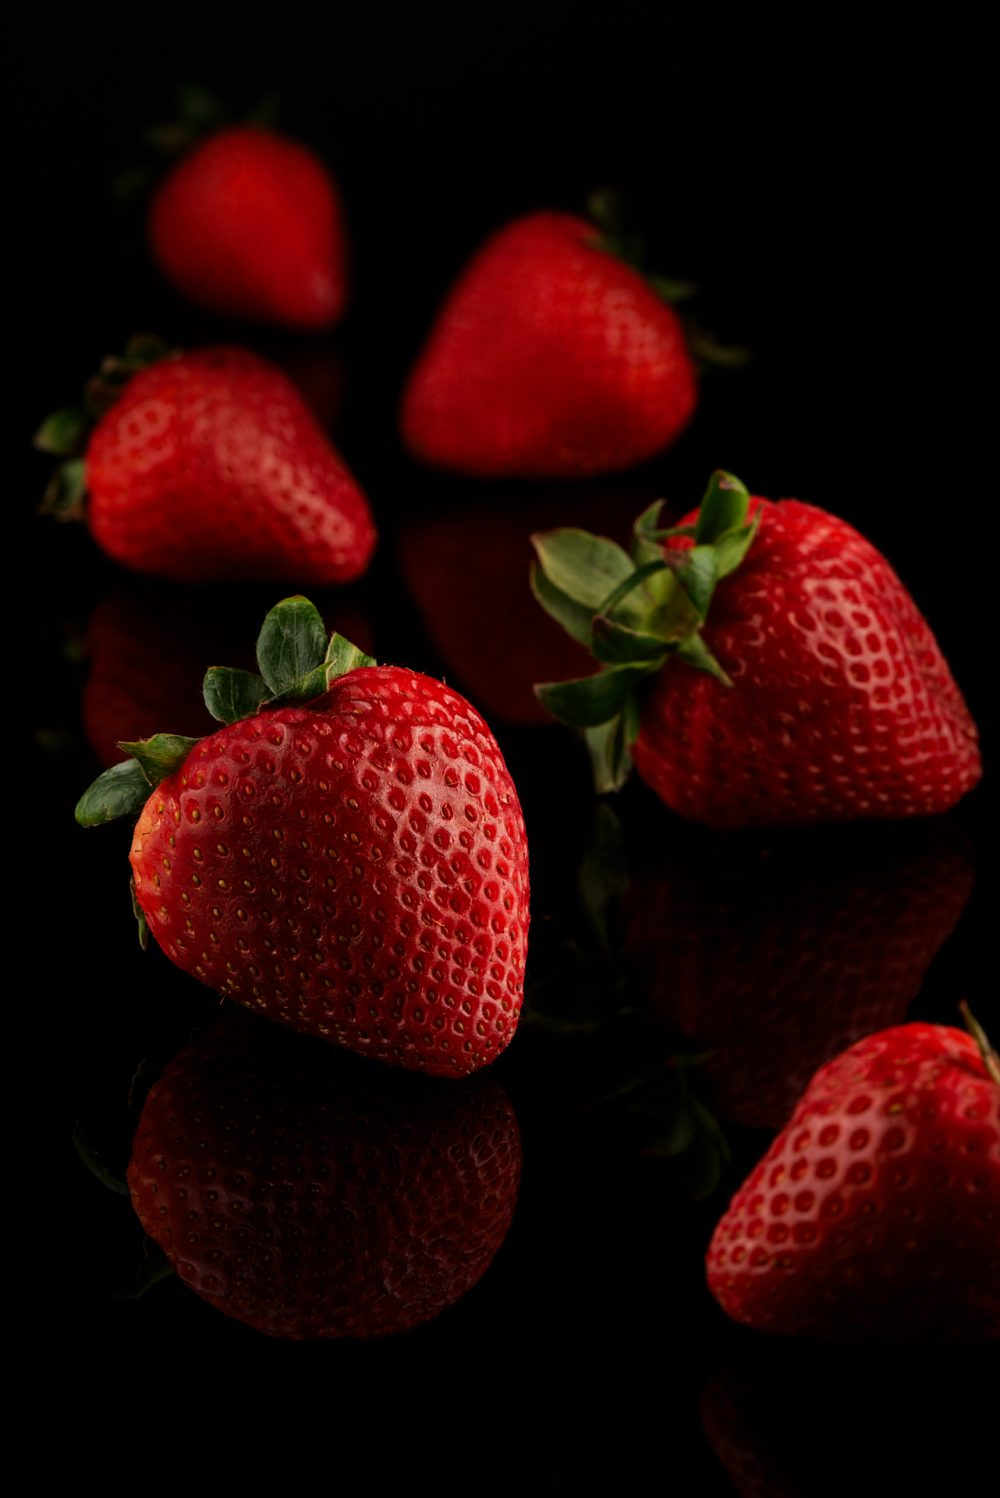 Food Photography of moody locally grown organic strawberries on a black reflective surface Photographed by Brandon Marsh Photography